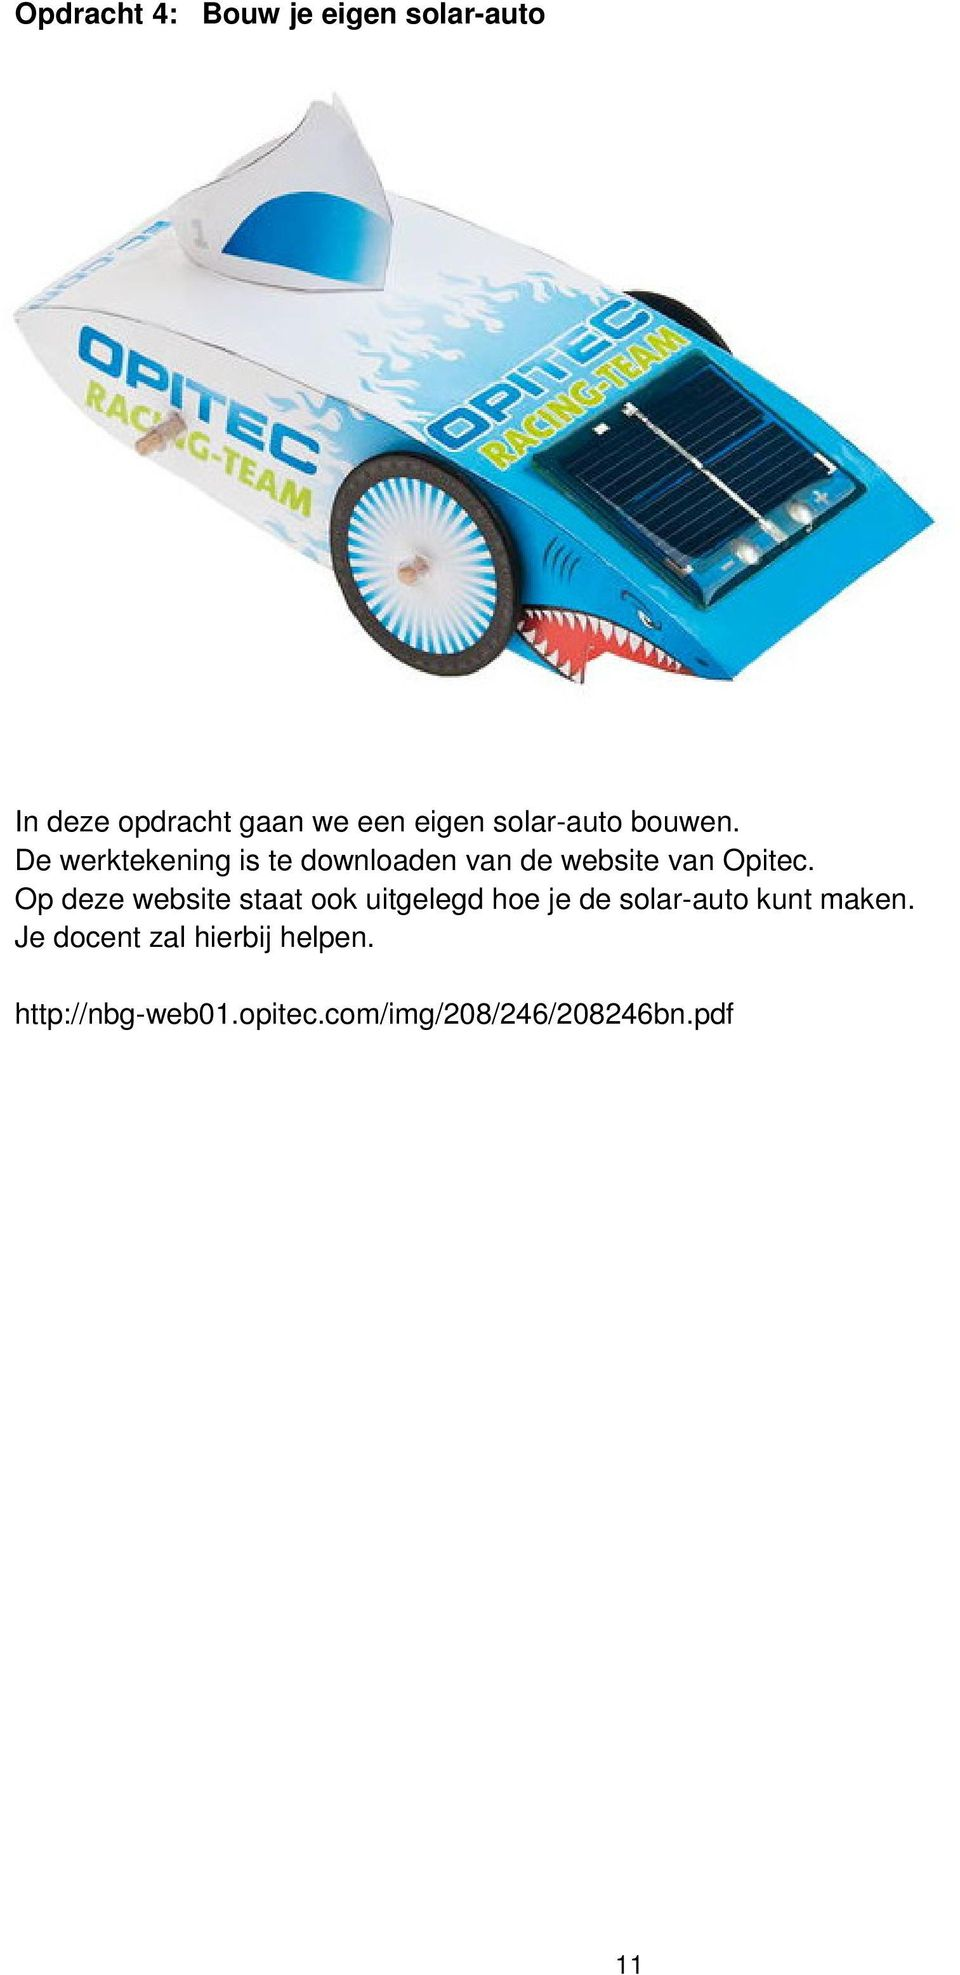 De werktekening is te downloaden van de website van Opitec.